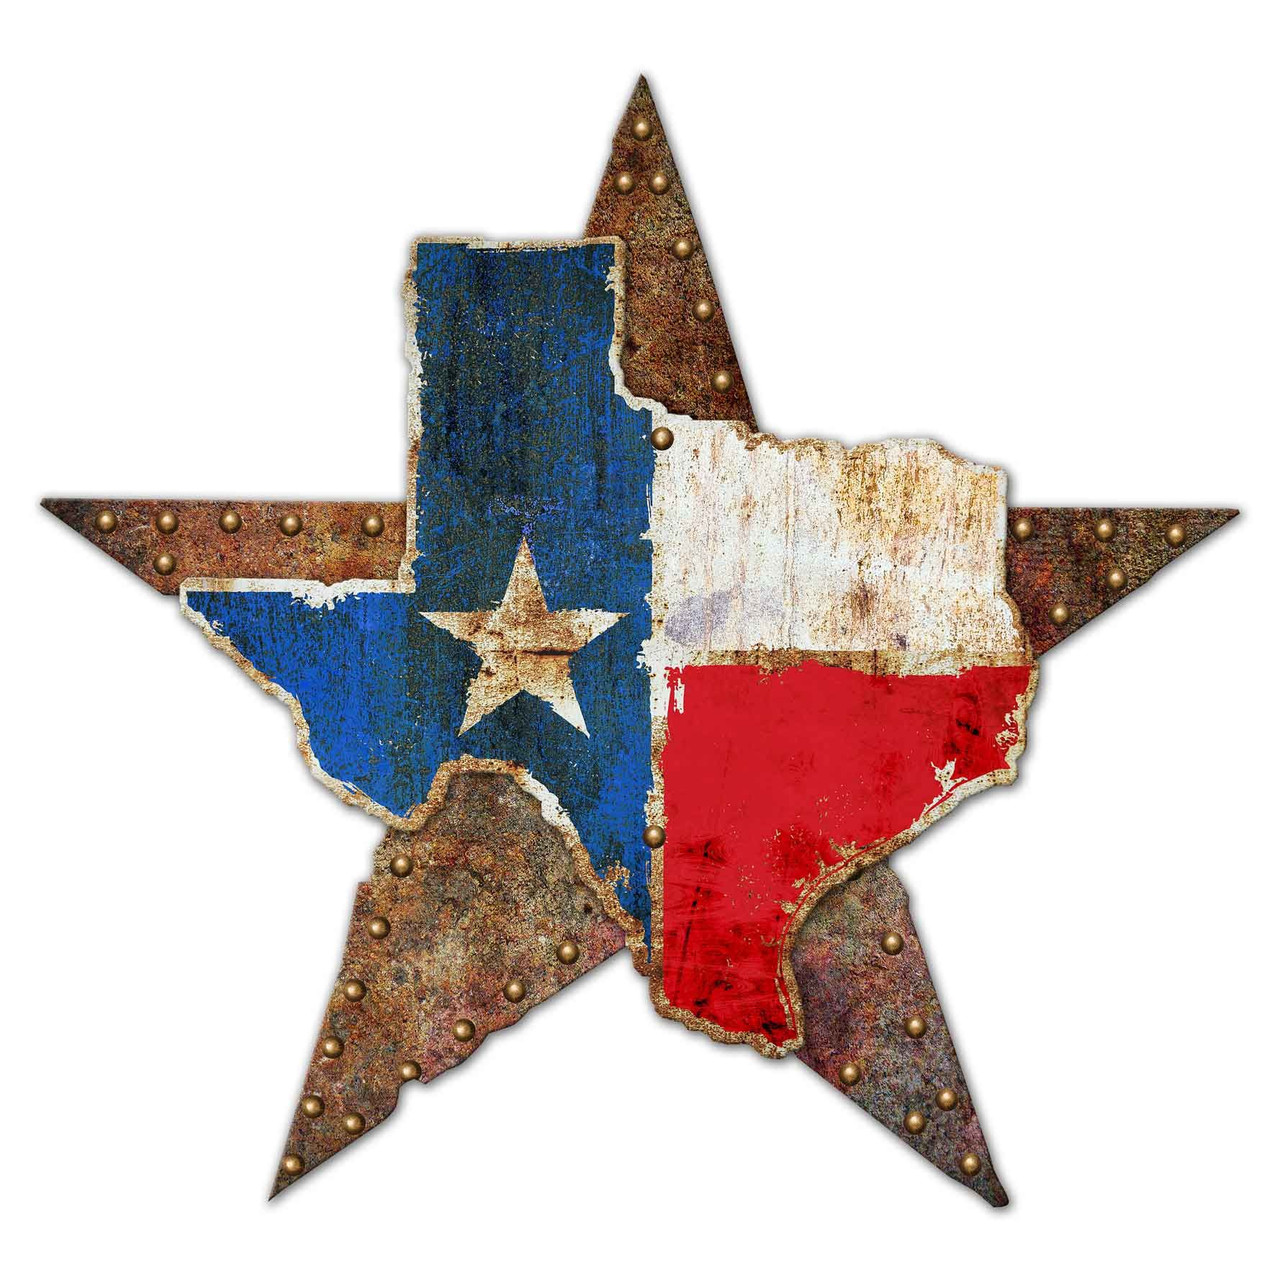 3-D Texas Star Rustic Sign 36 x 36 Inches